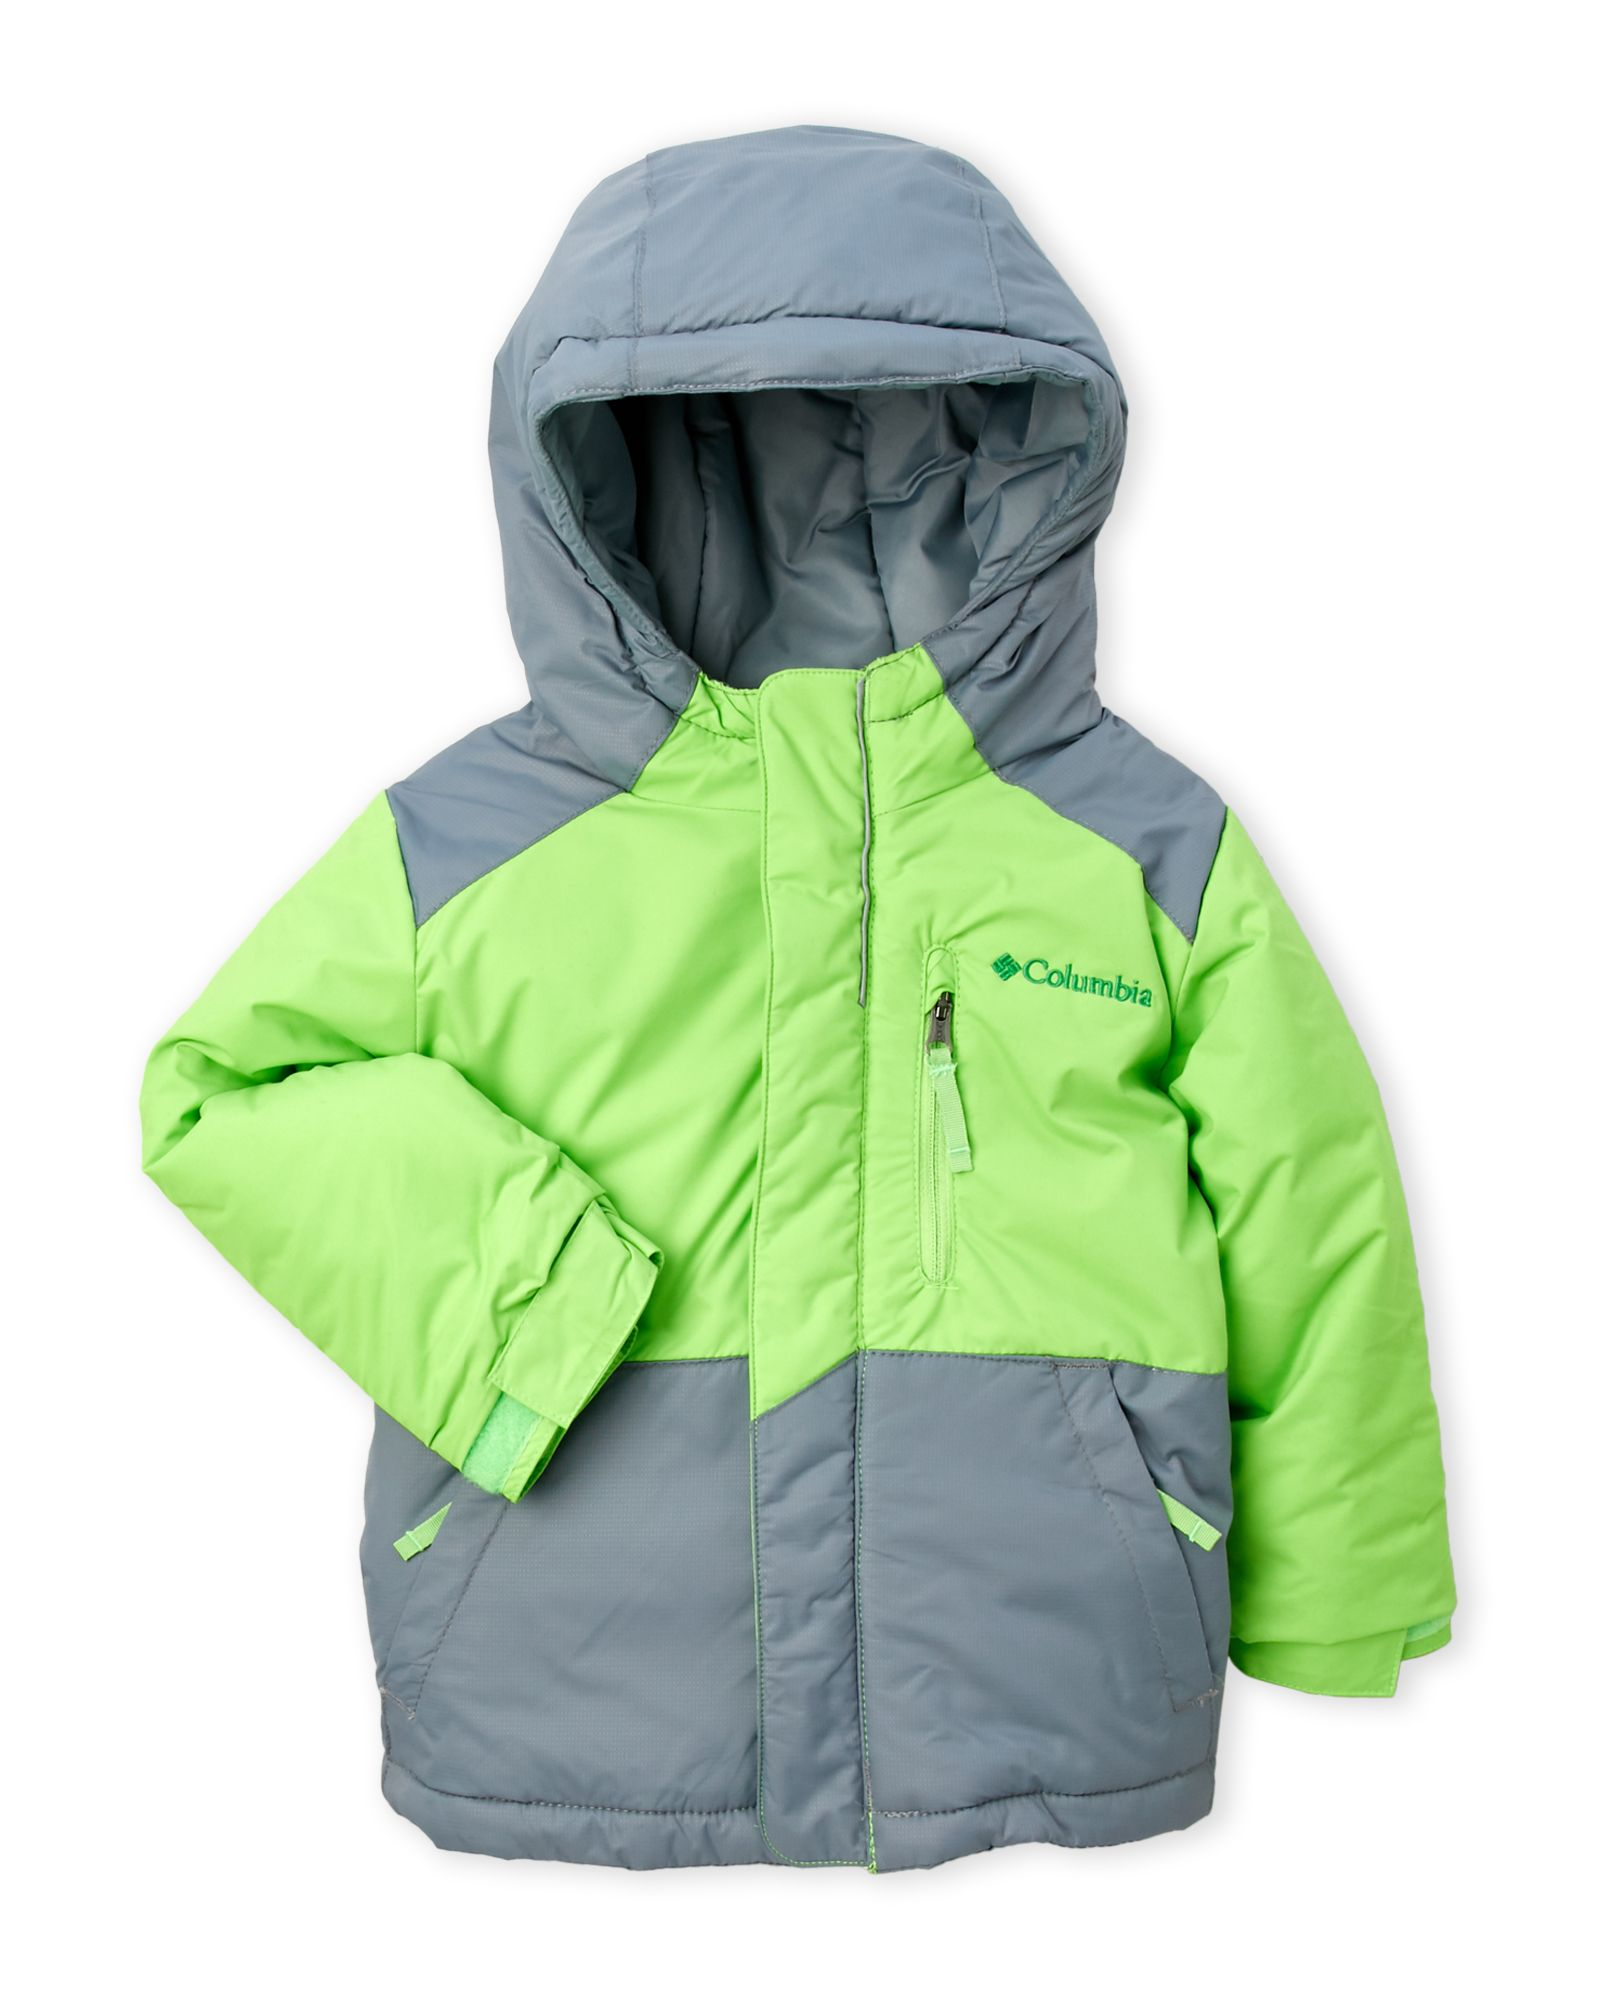 532c9a330 Toddler Boys) Hooded Light Lift Jacket